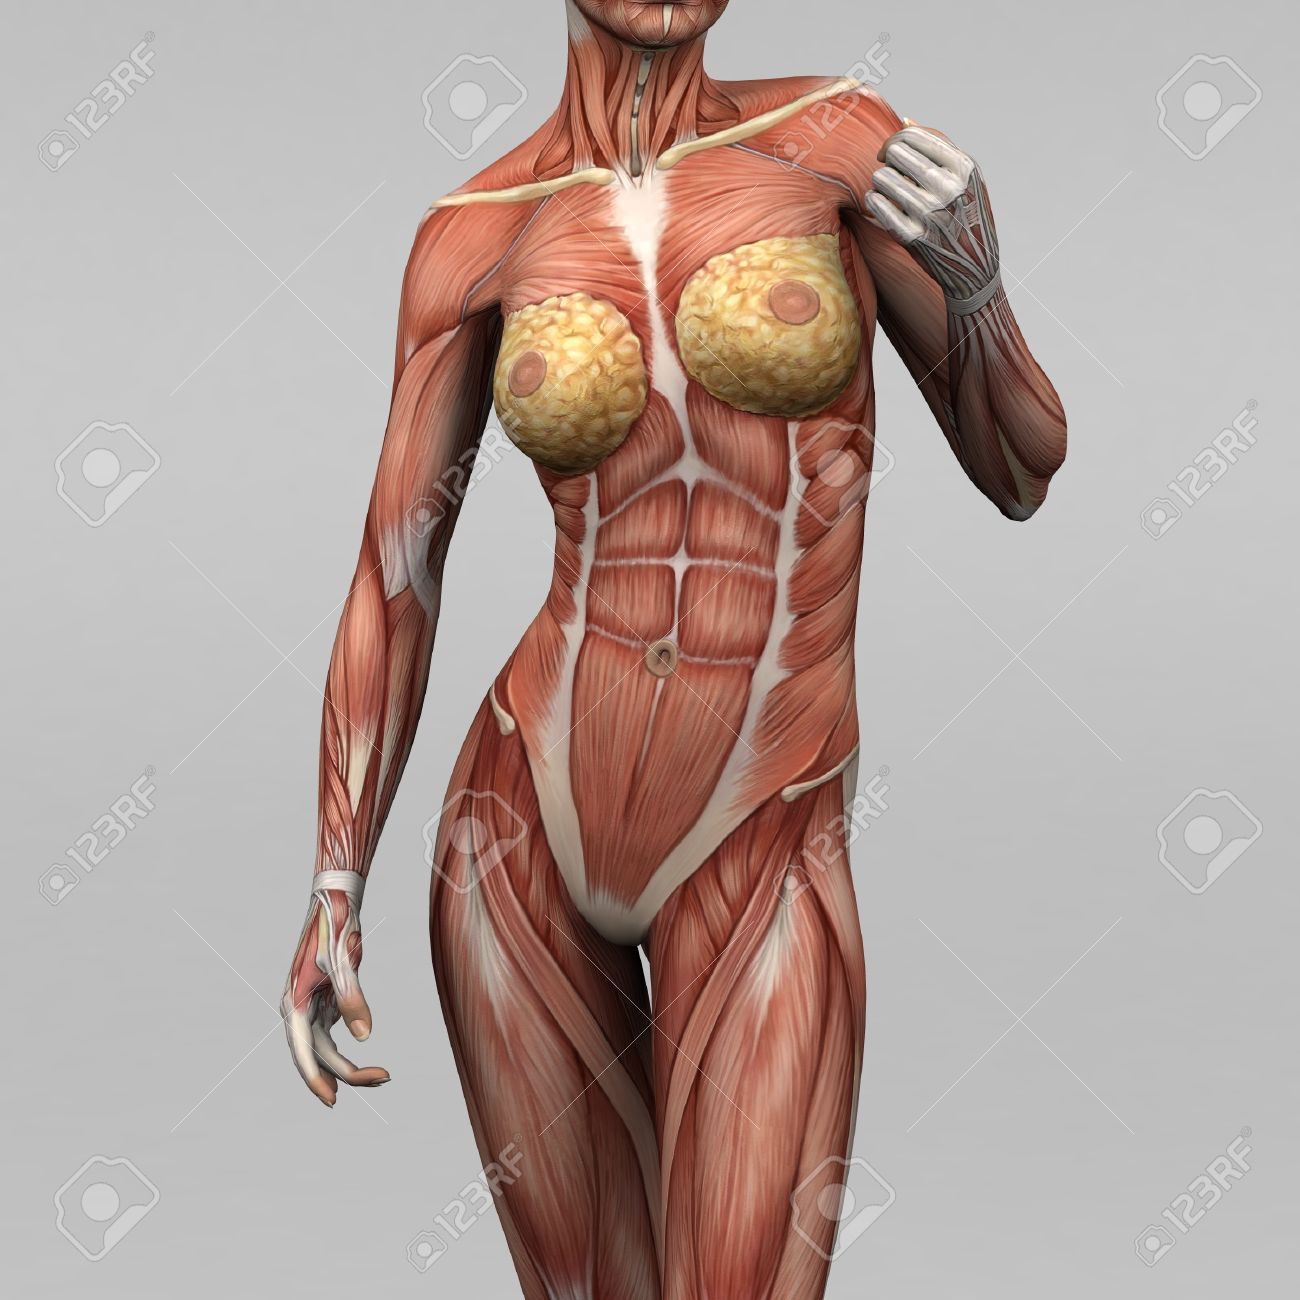 female human anatomy and muscles stock photo, picture and royalty, Muscles